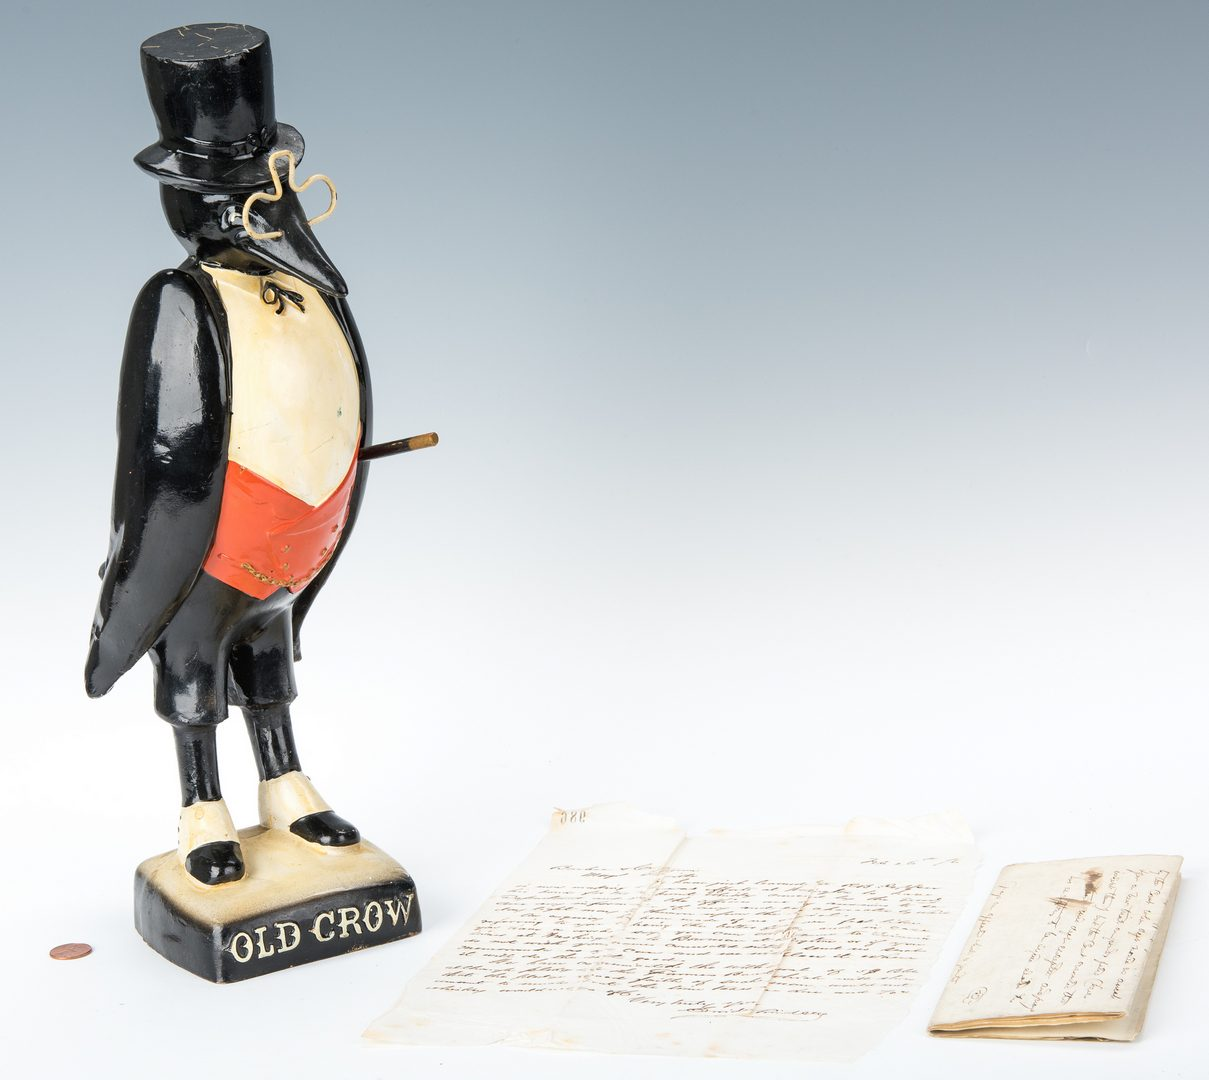 Lot 839: Old Crow Whiskey Figure & Documents, 3 items